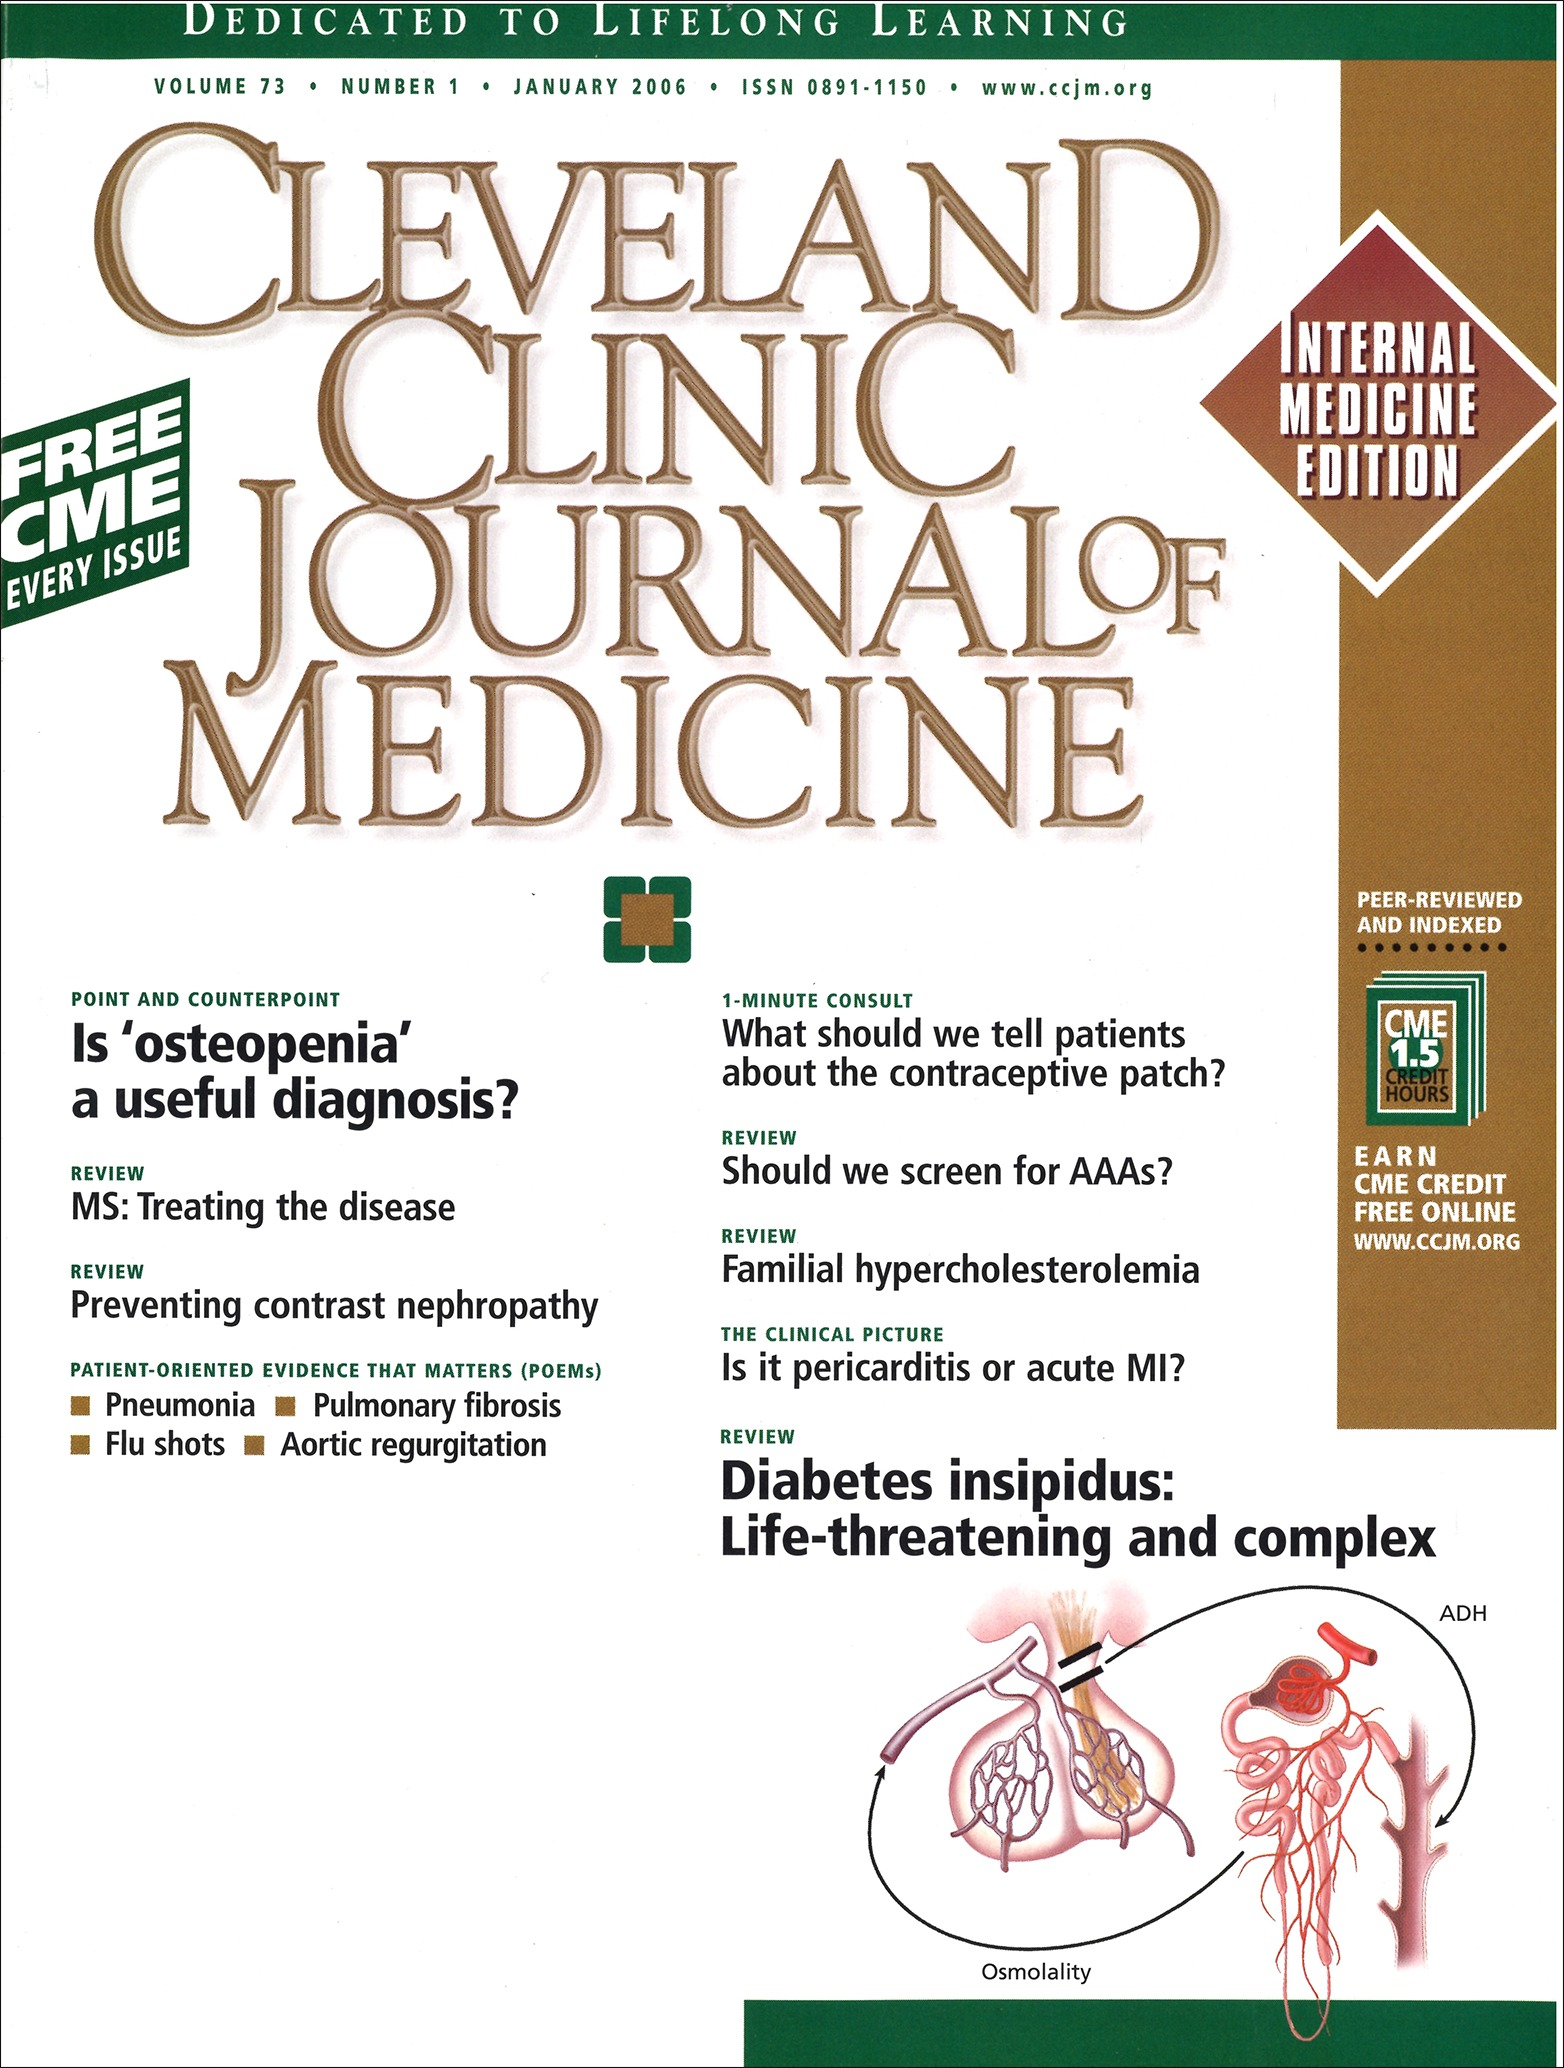 Diabetes Insipidus Diagnosis And Treatment Of A Complex Disease